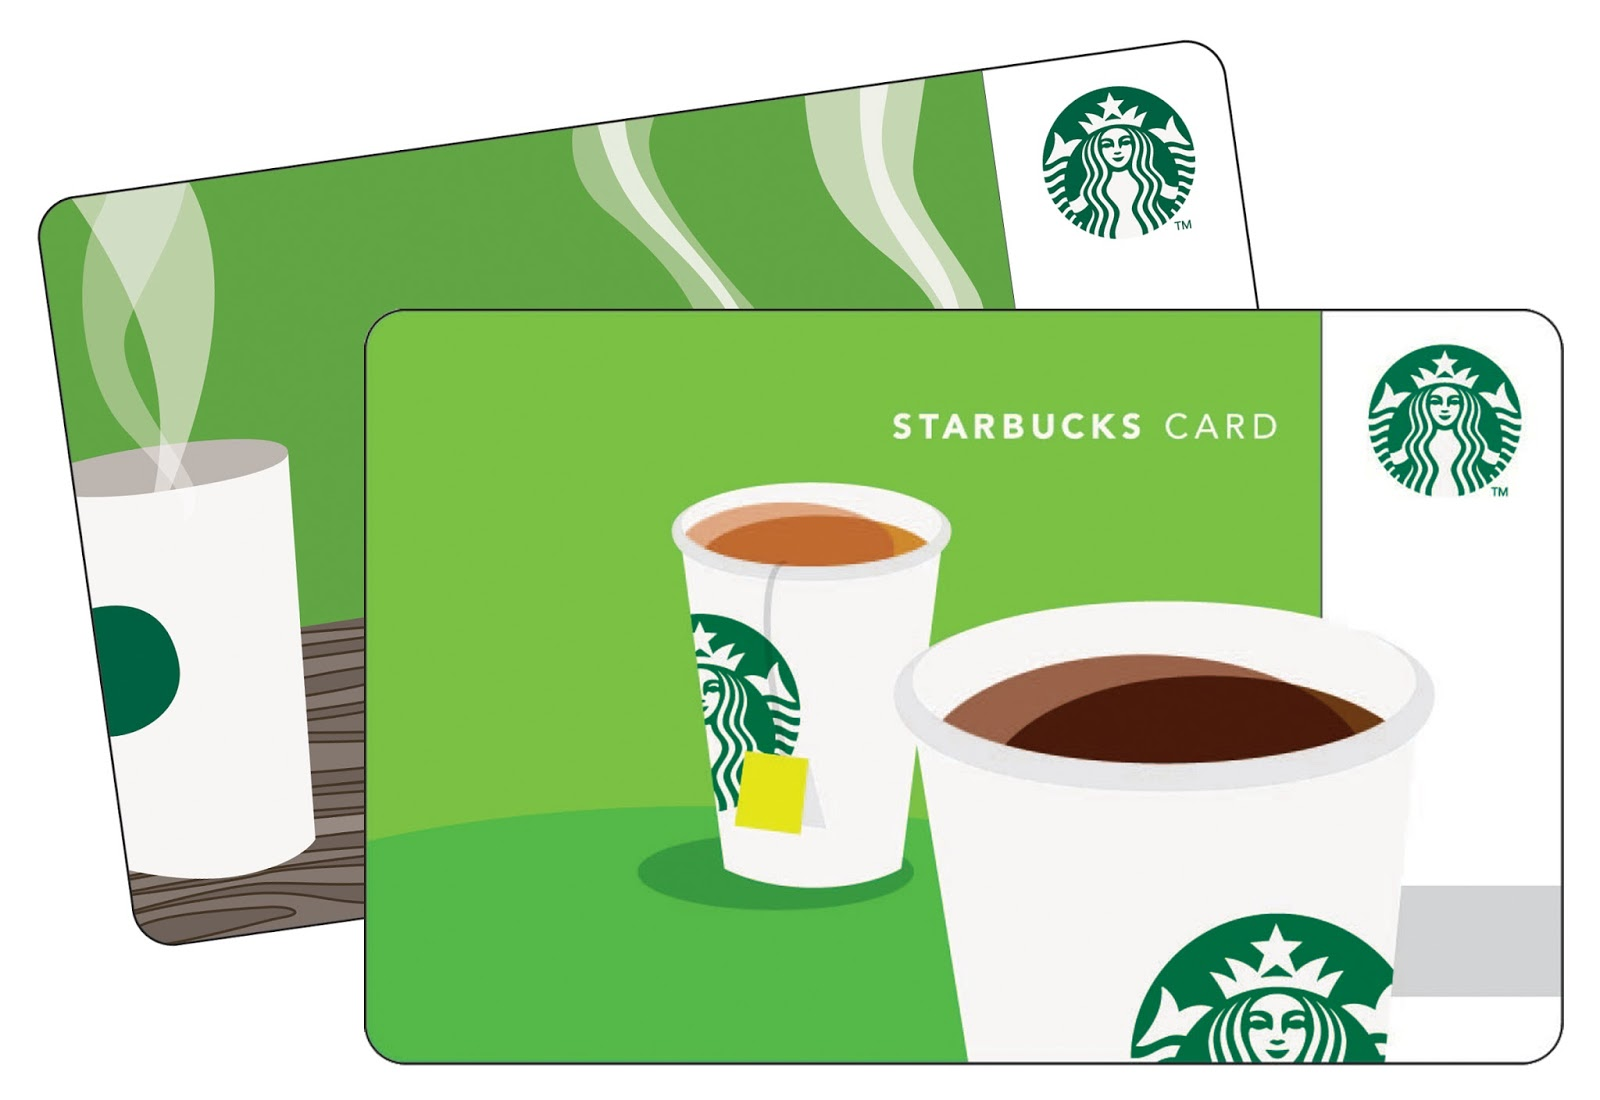 st *HOT* Starbucks K Cups Only $0.37 at Target!